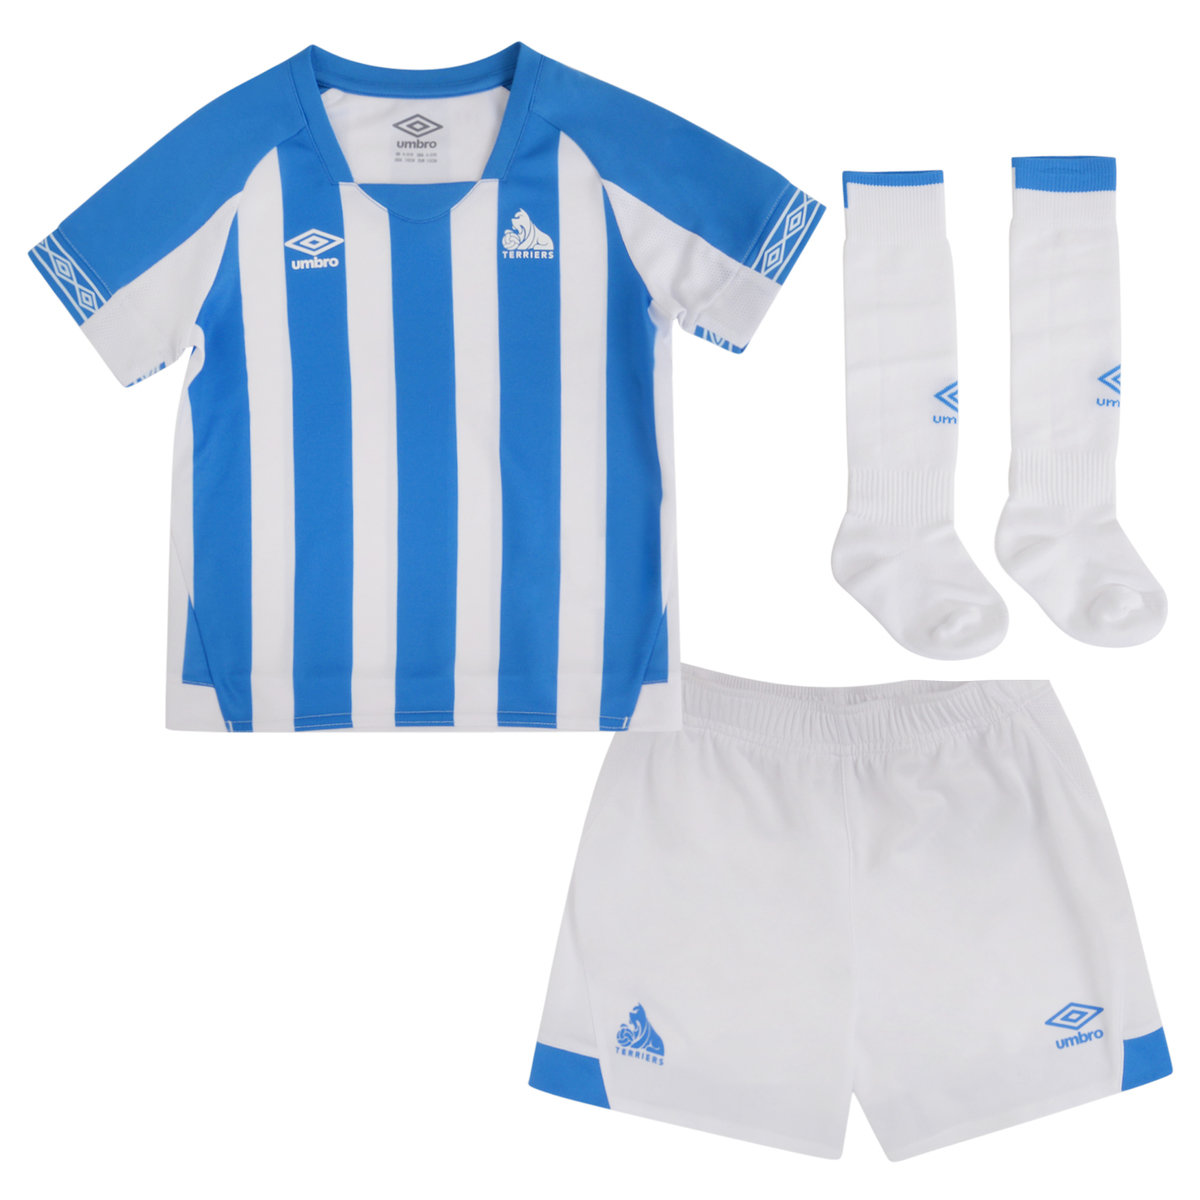 HUDDERSFIELD TOWN 18/19 HOME INFANT KIT